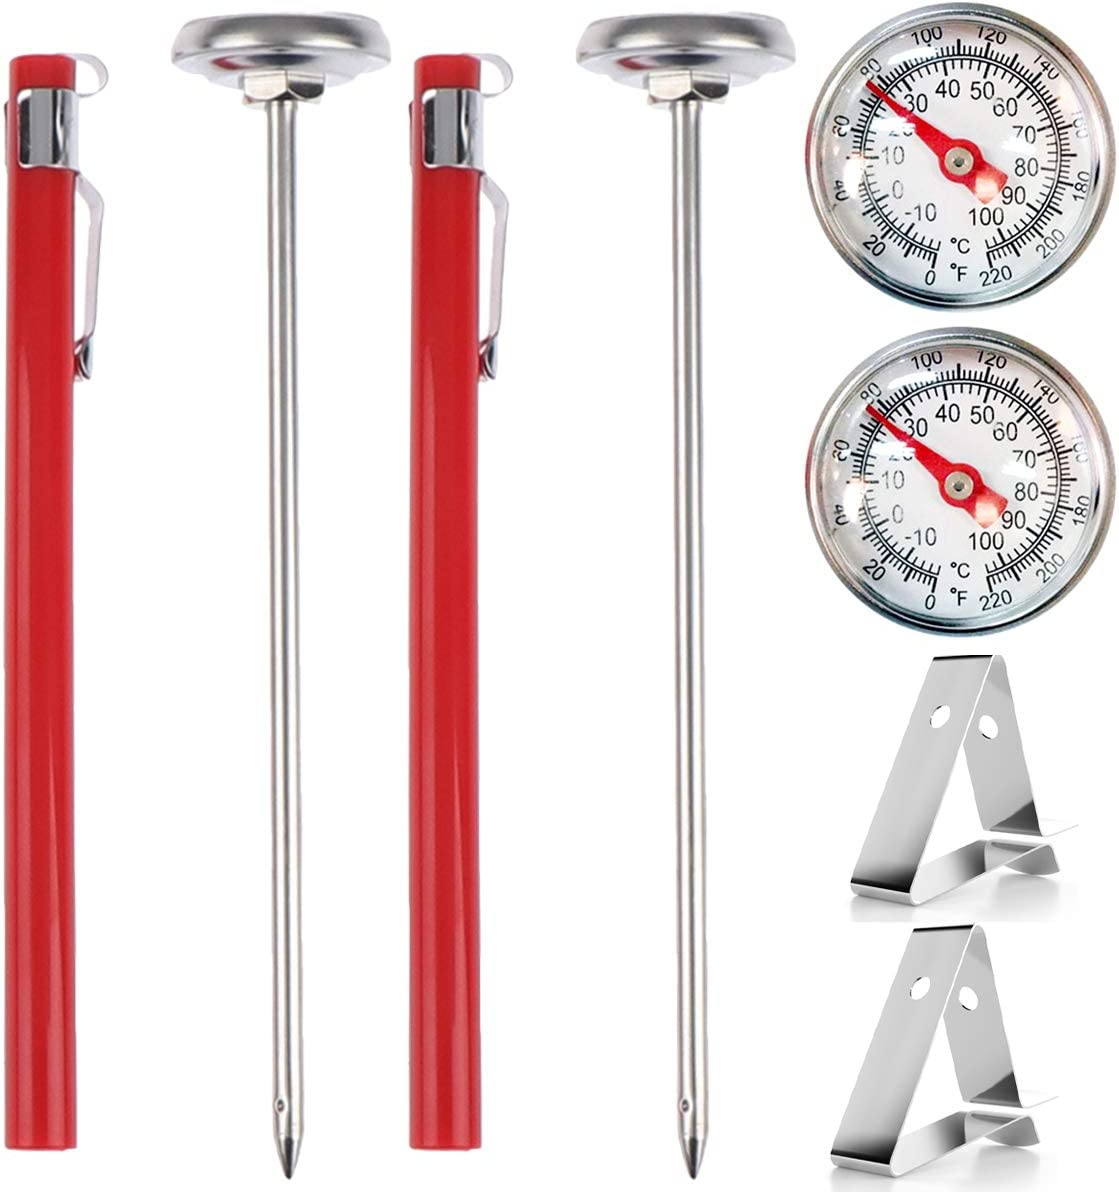 Buytra 2 Pack Stainless Steel Instant Read Pocket Thermometer 1